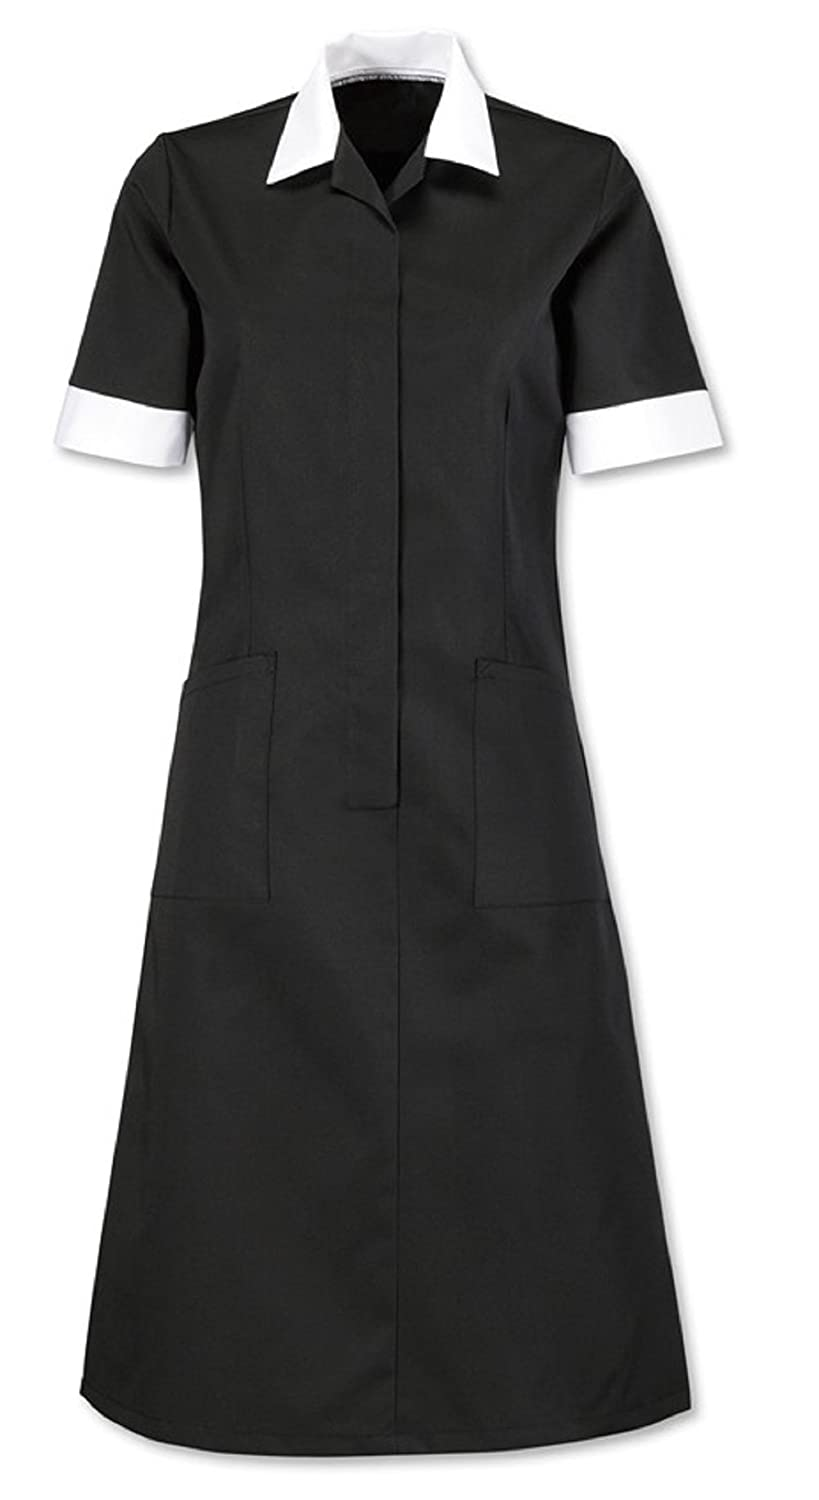 1940s Style Dresses and Clothing Waitress Dress D60 £24.92 AT vintagedancer.com